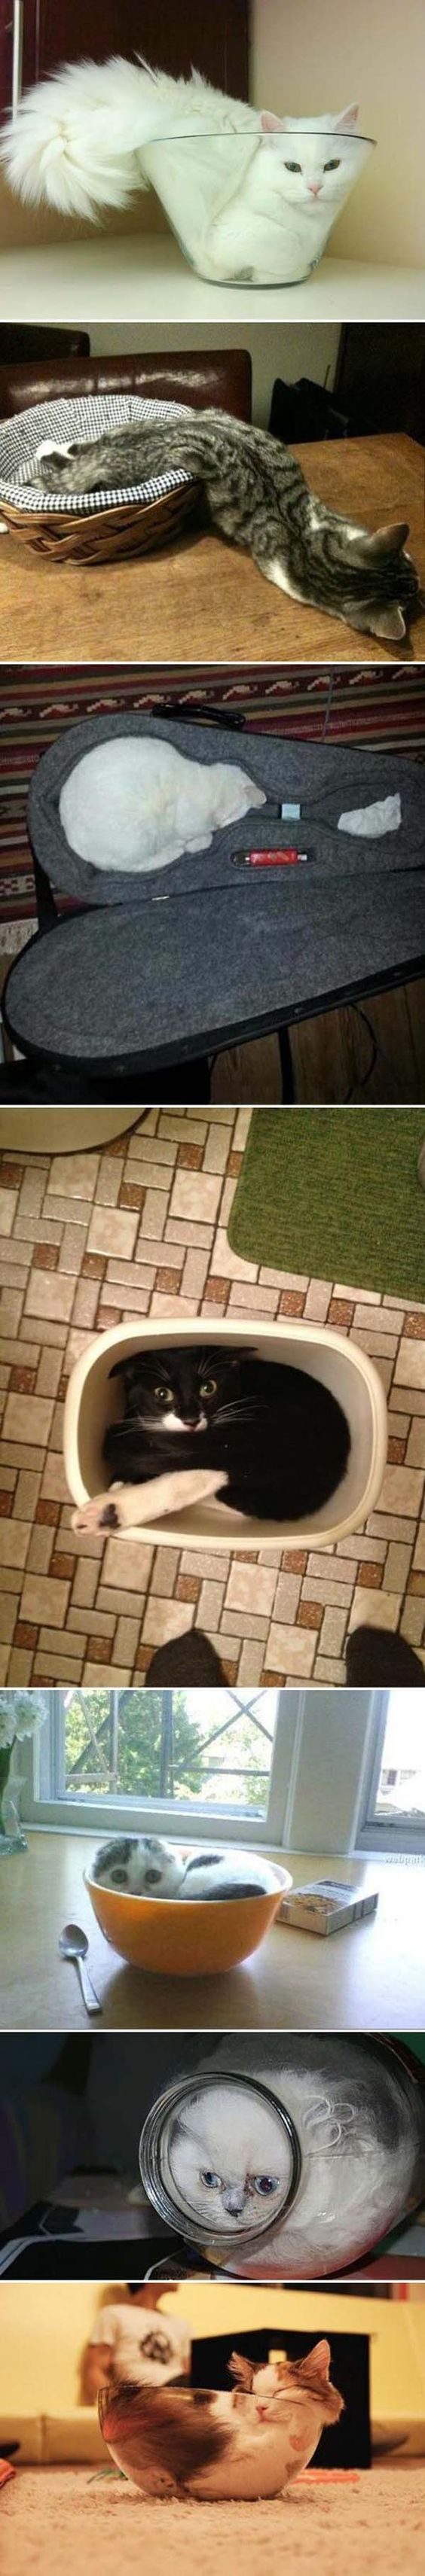 Funny Cats Pictures Funny Pictures Animals Pinterest - 20 of the funniest i dont own a cat moments that ever happened to people